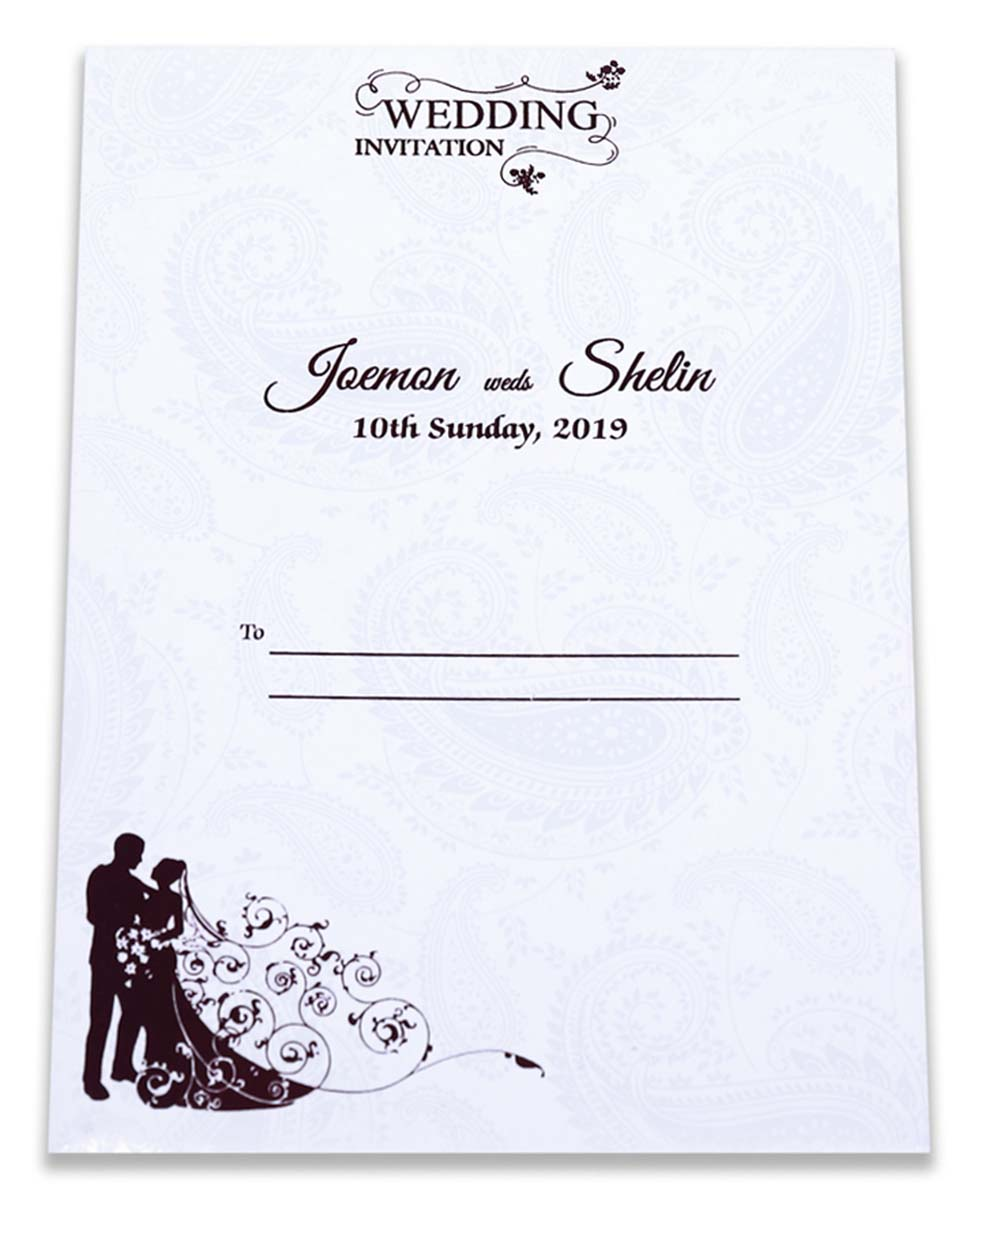 Indian wedding invitation in purple satin with paisley design - Click Image to Close